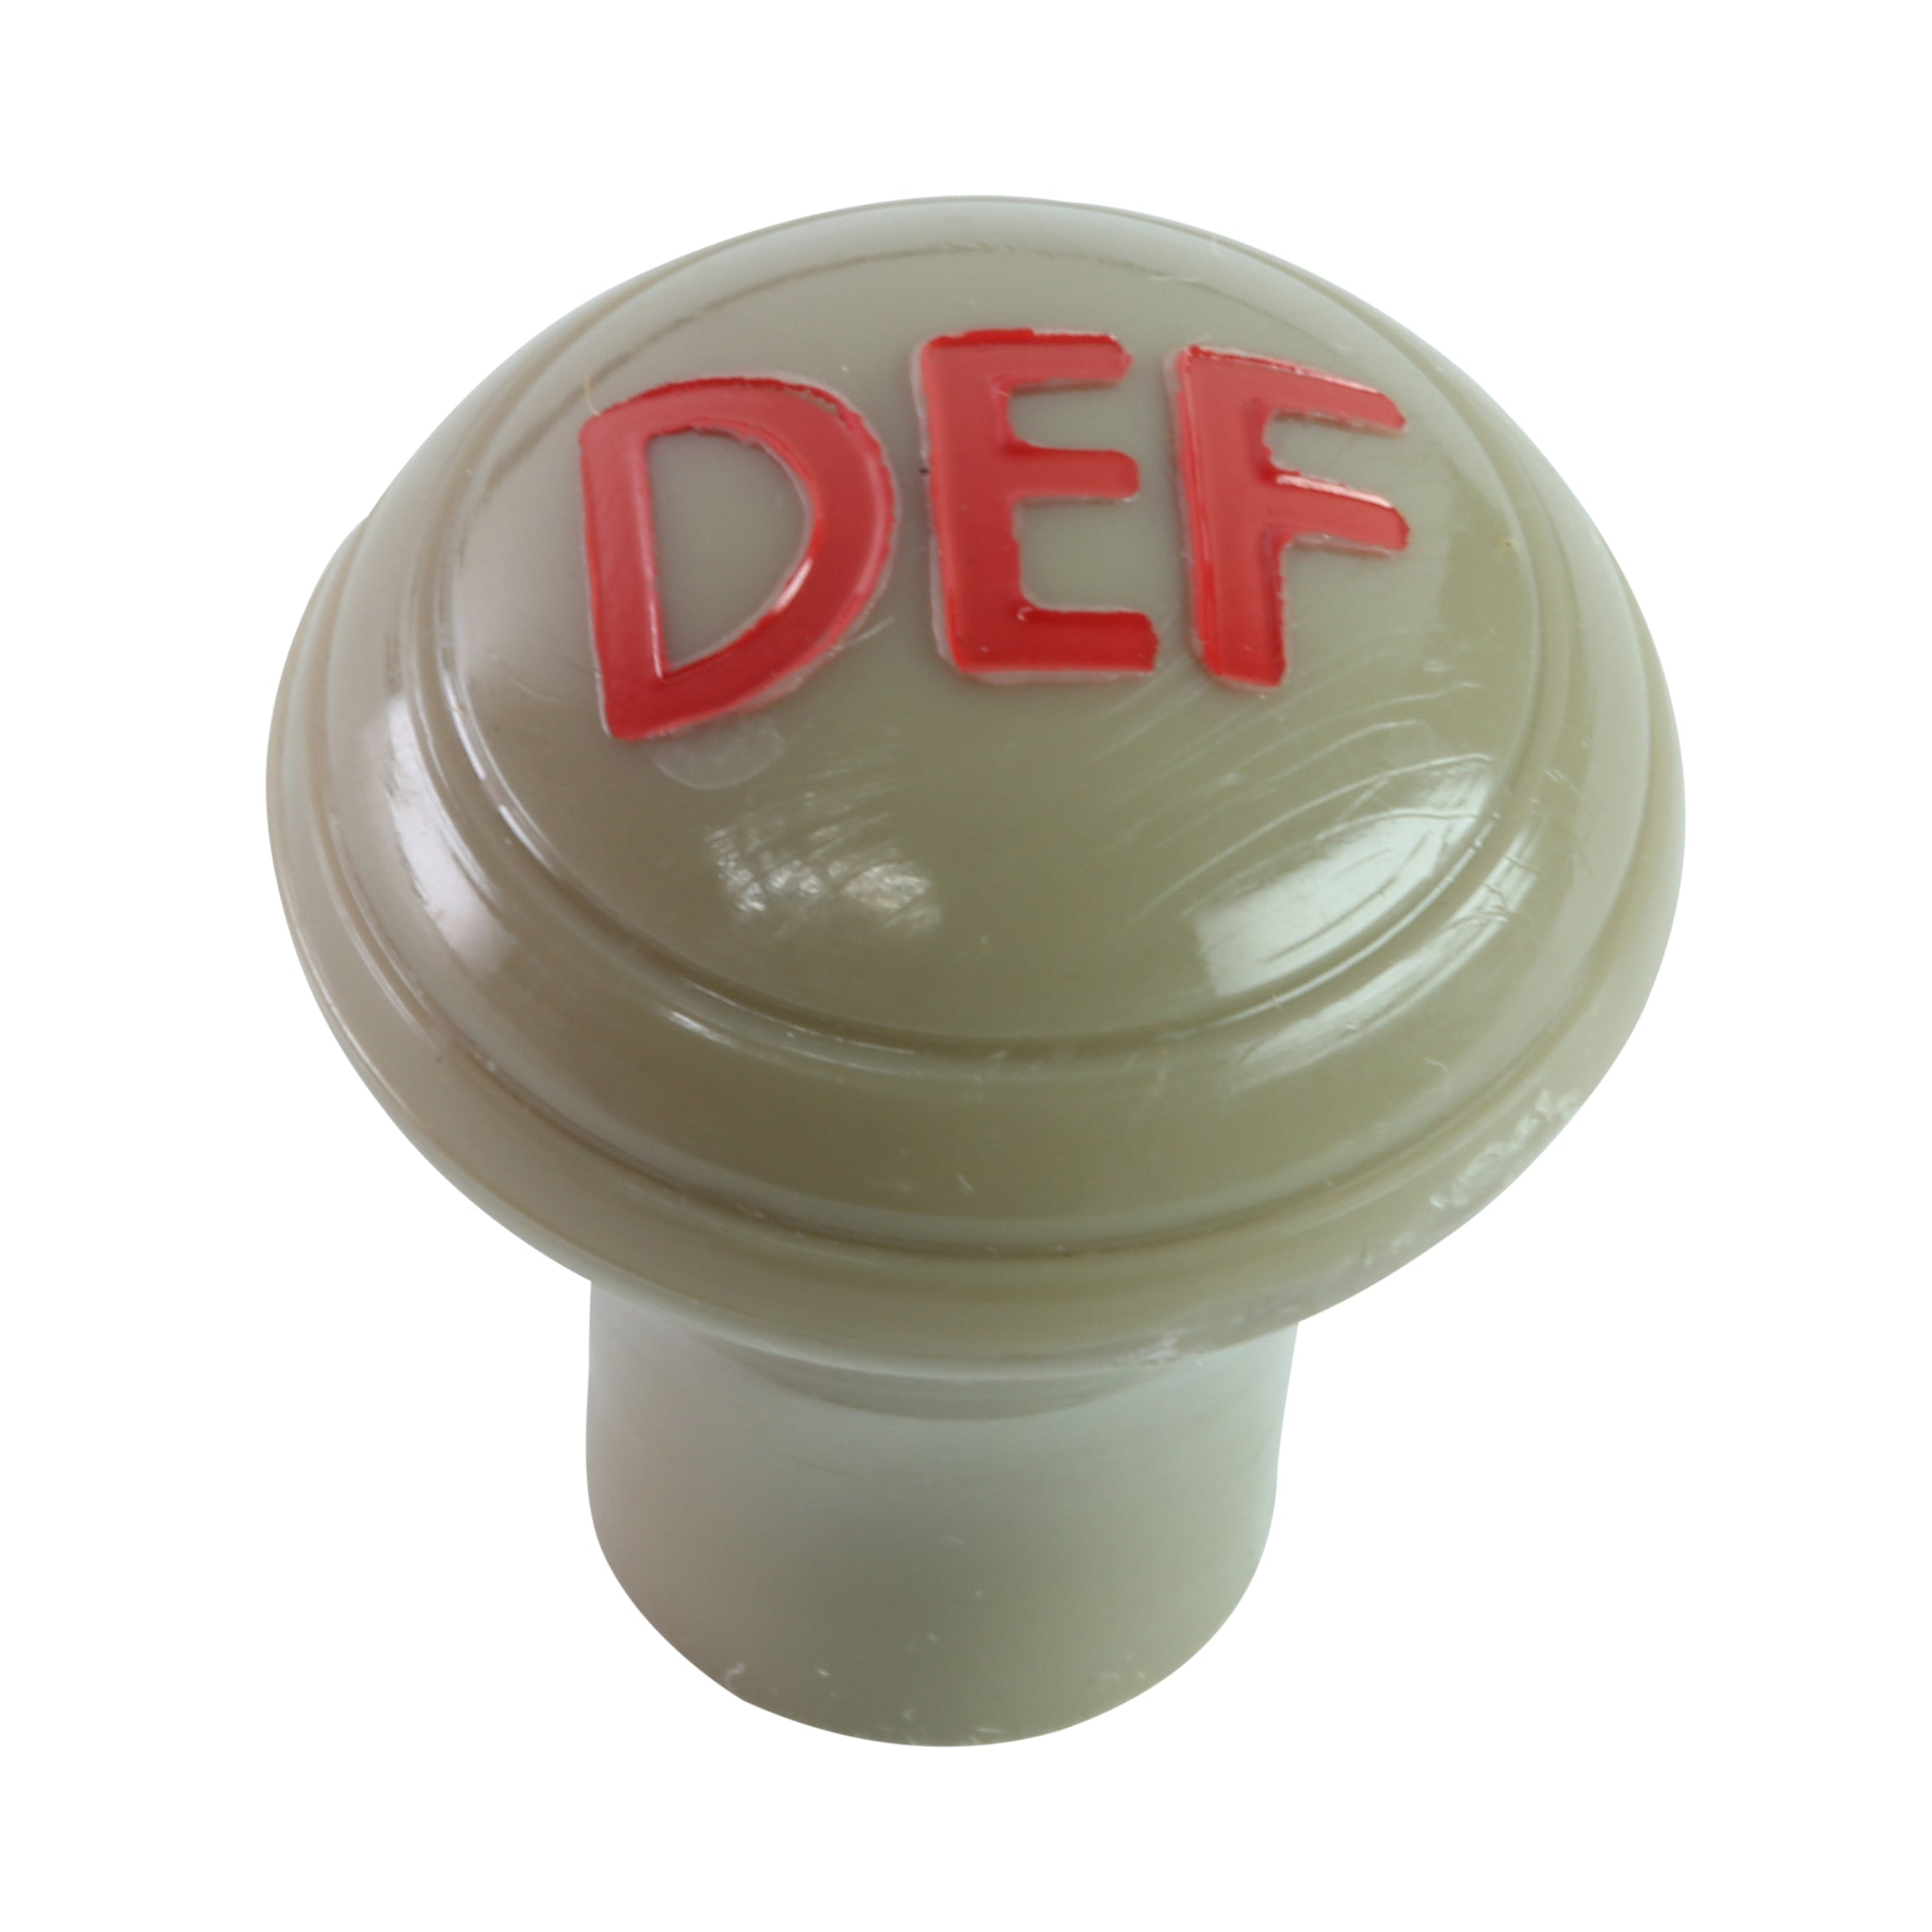 Hot Water Heater Defroster Knob (Gray Tan) • 1946